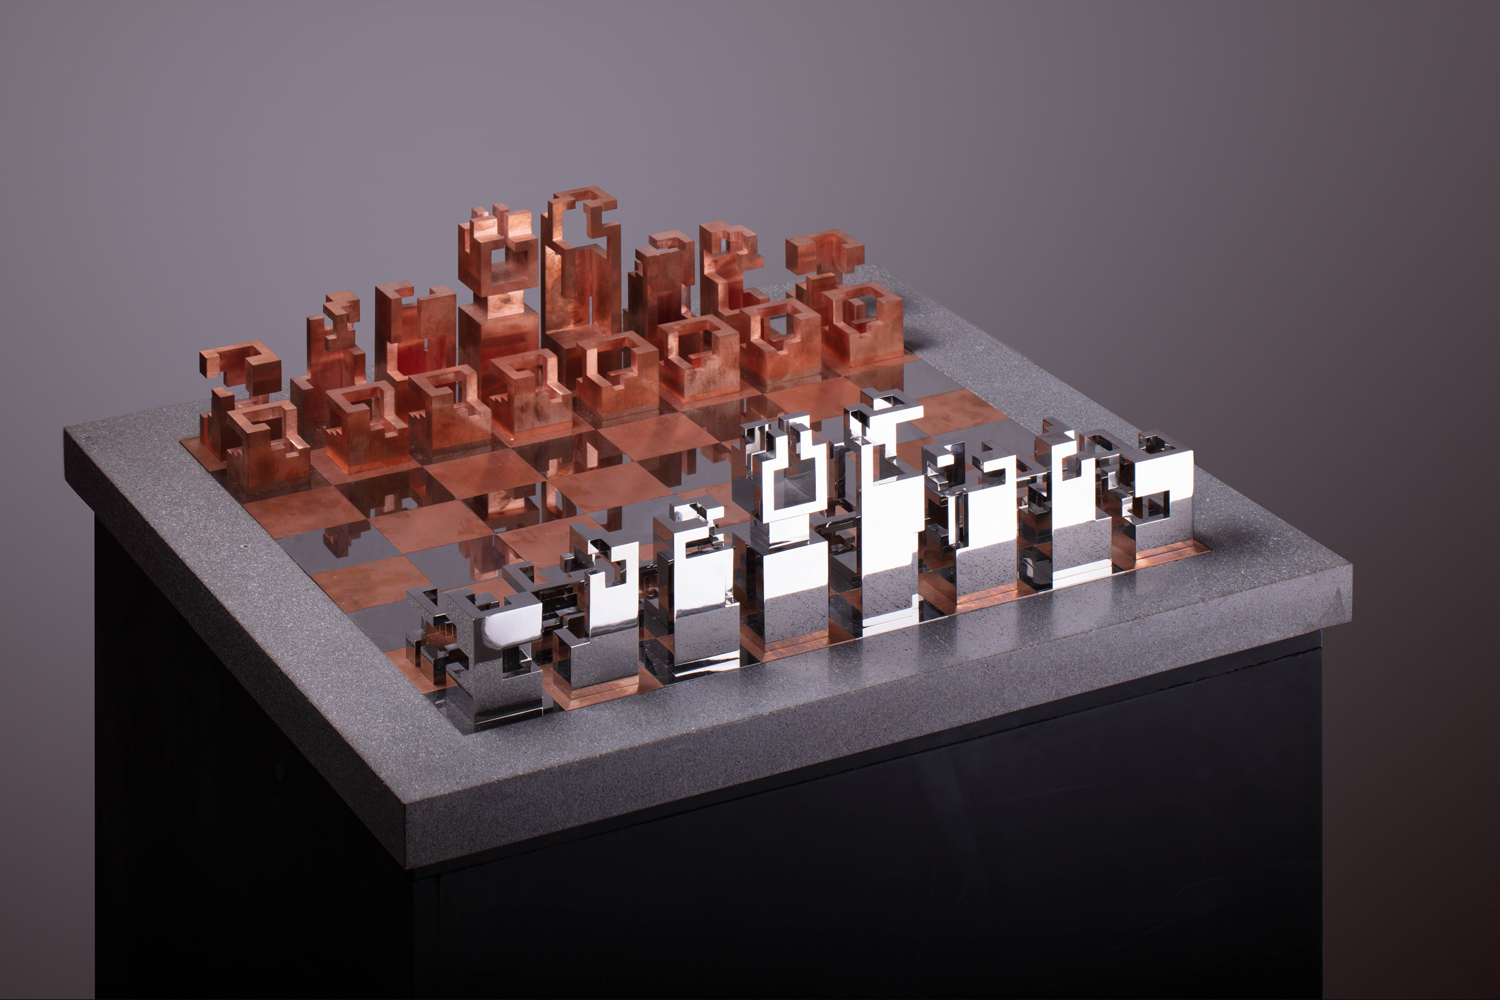 web222-Jorge-Yazpik-chess-set-volcanic-stone-steel-bronze-mf-gallery.jpg